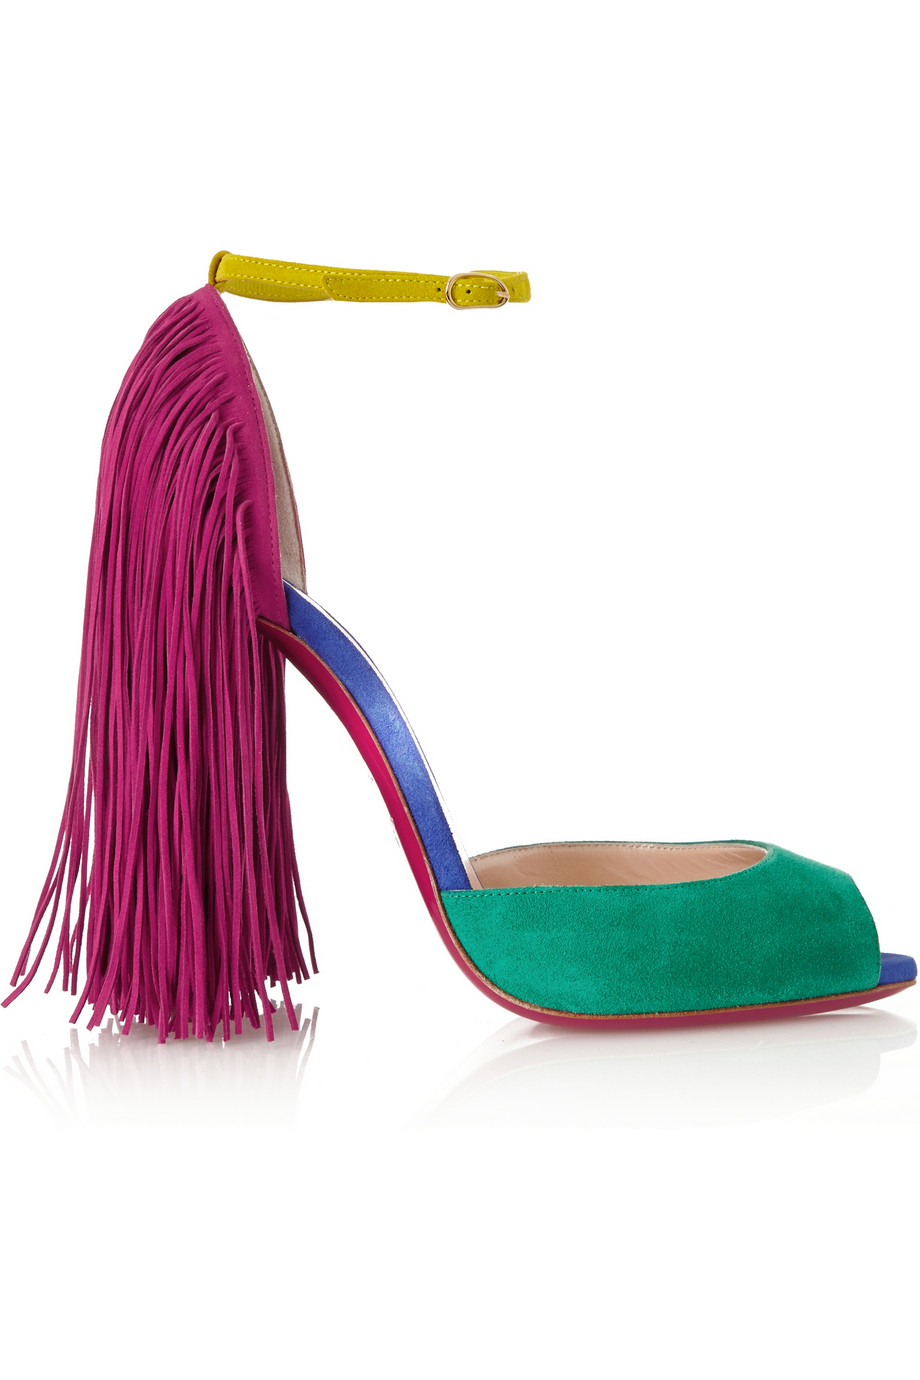 christian-louboutin-green-otrot-120-fringed-color-block-suede-sandals-product-1-27303955-0-556537494-normal